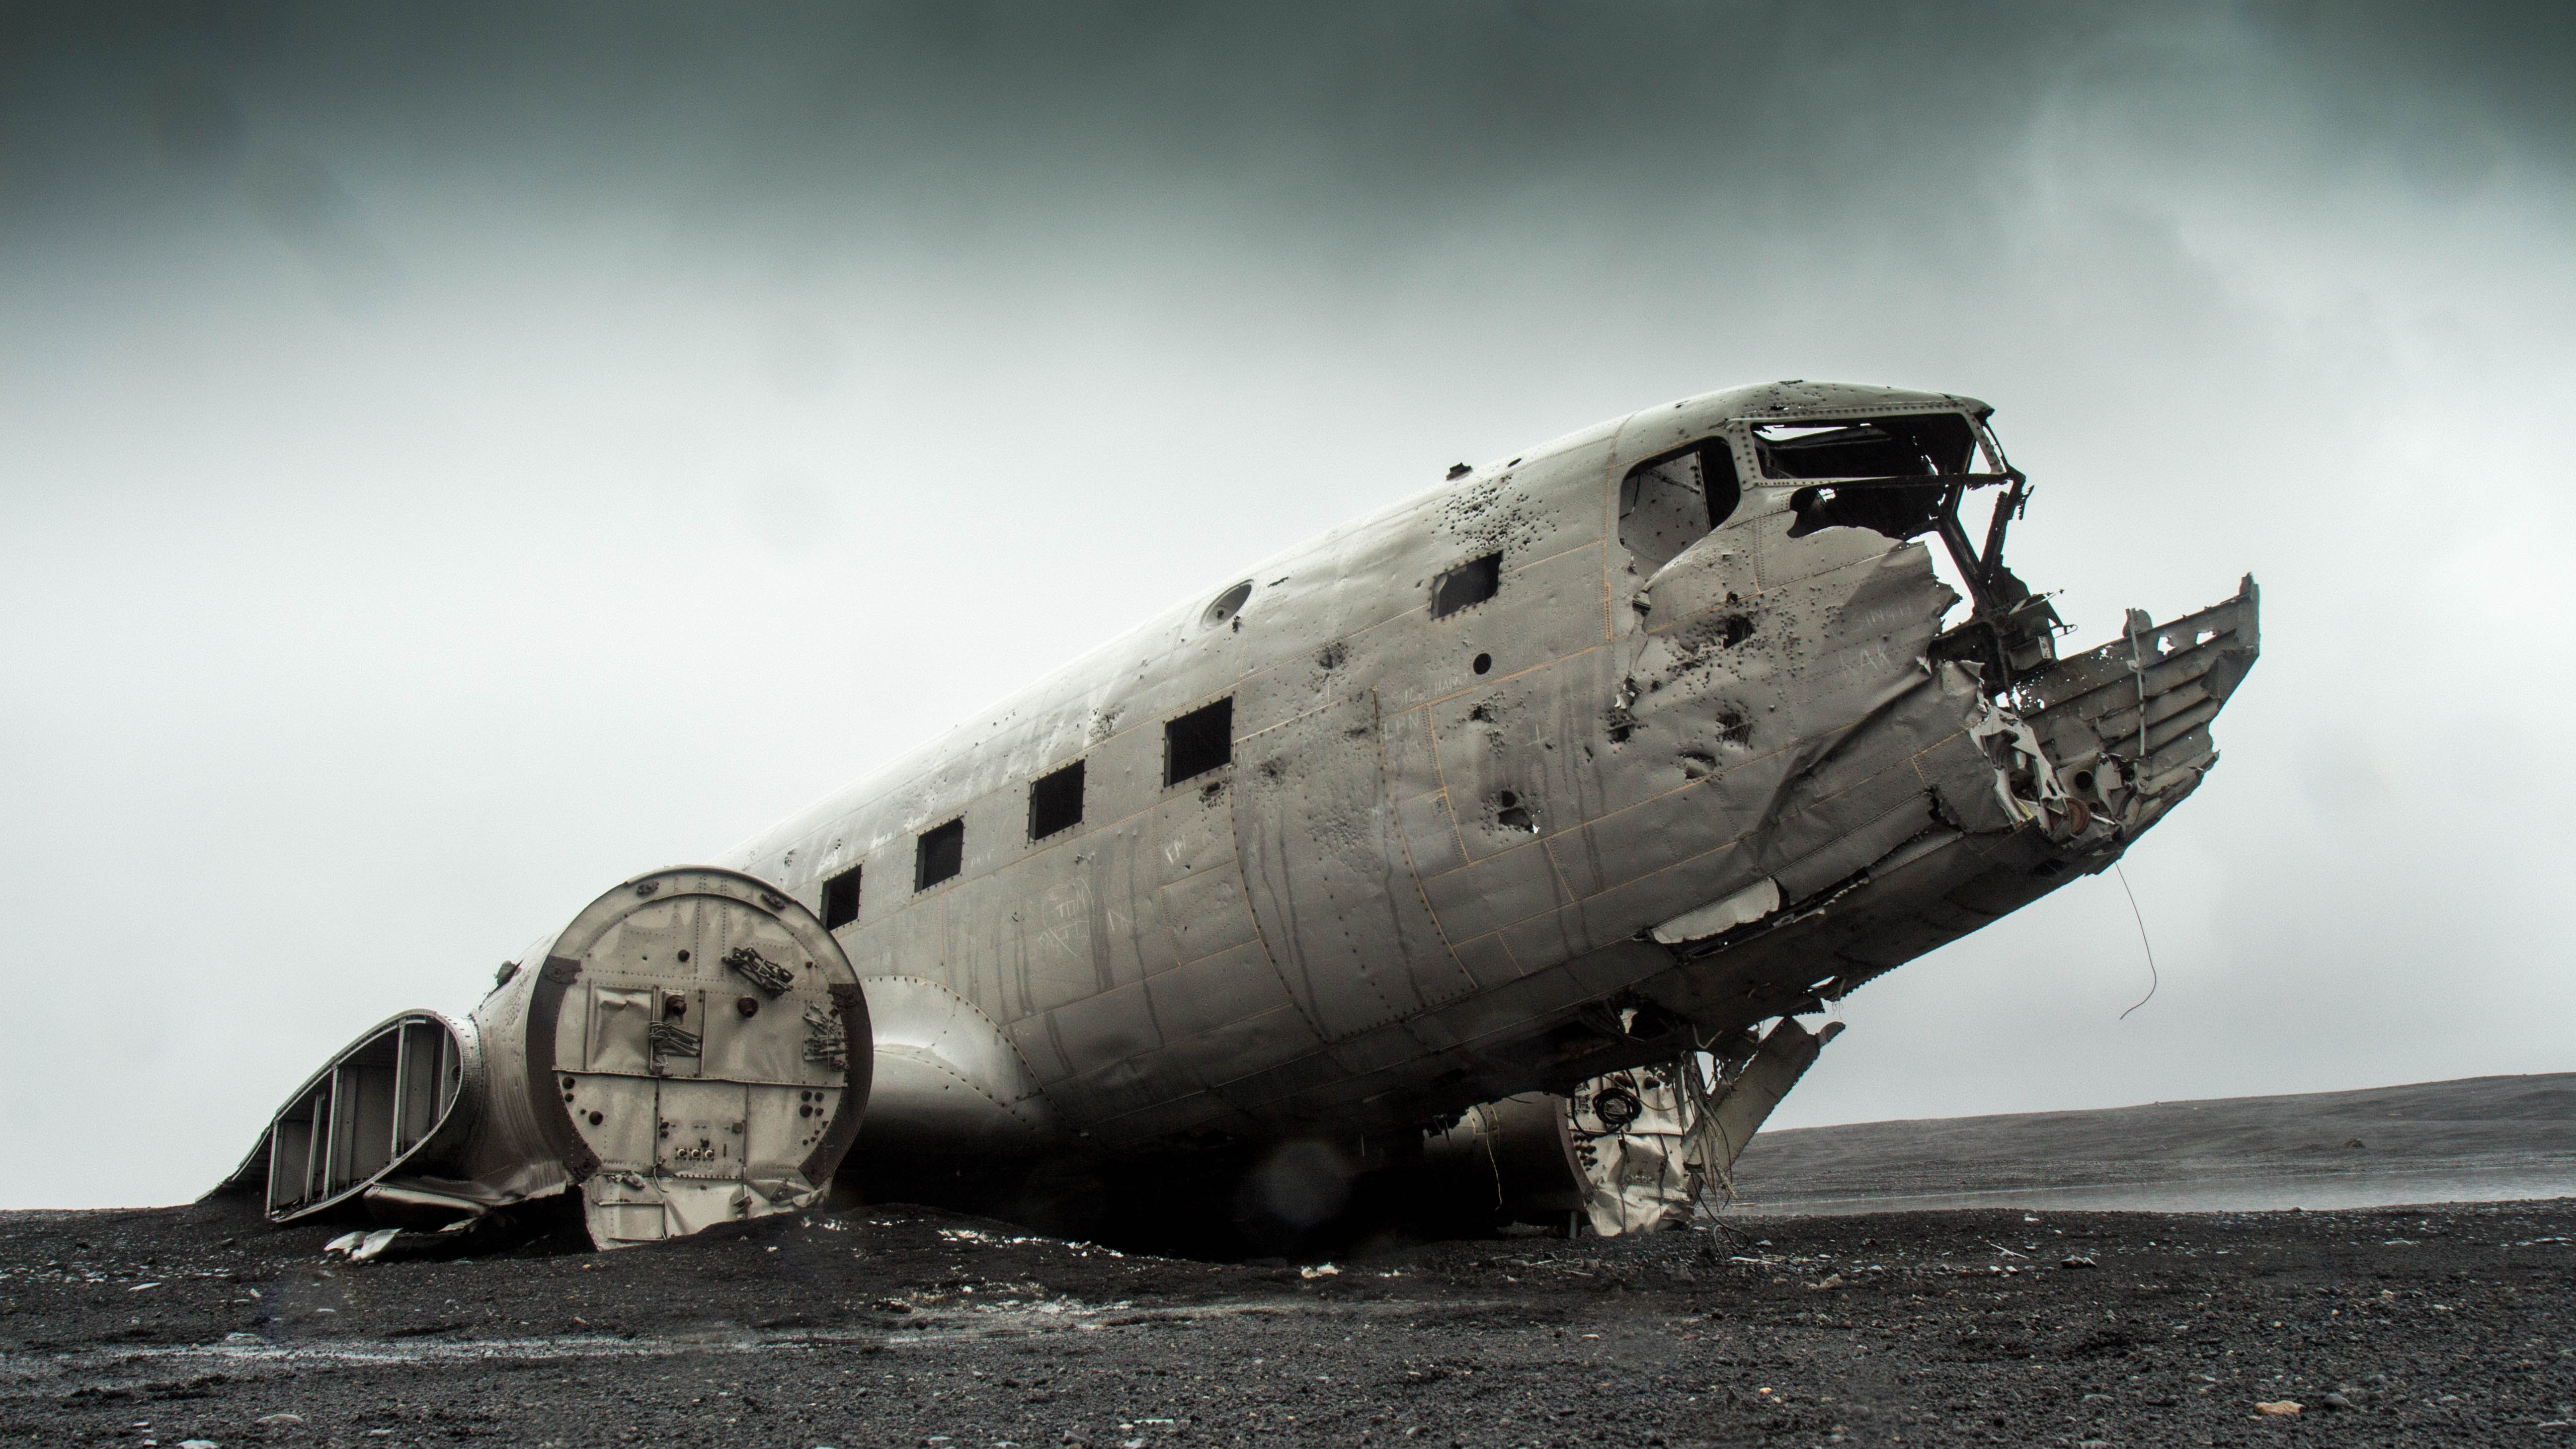 A broken, strange and crashed plane on a sandy floor